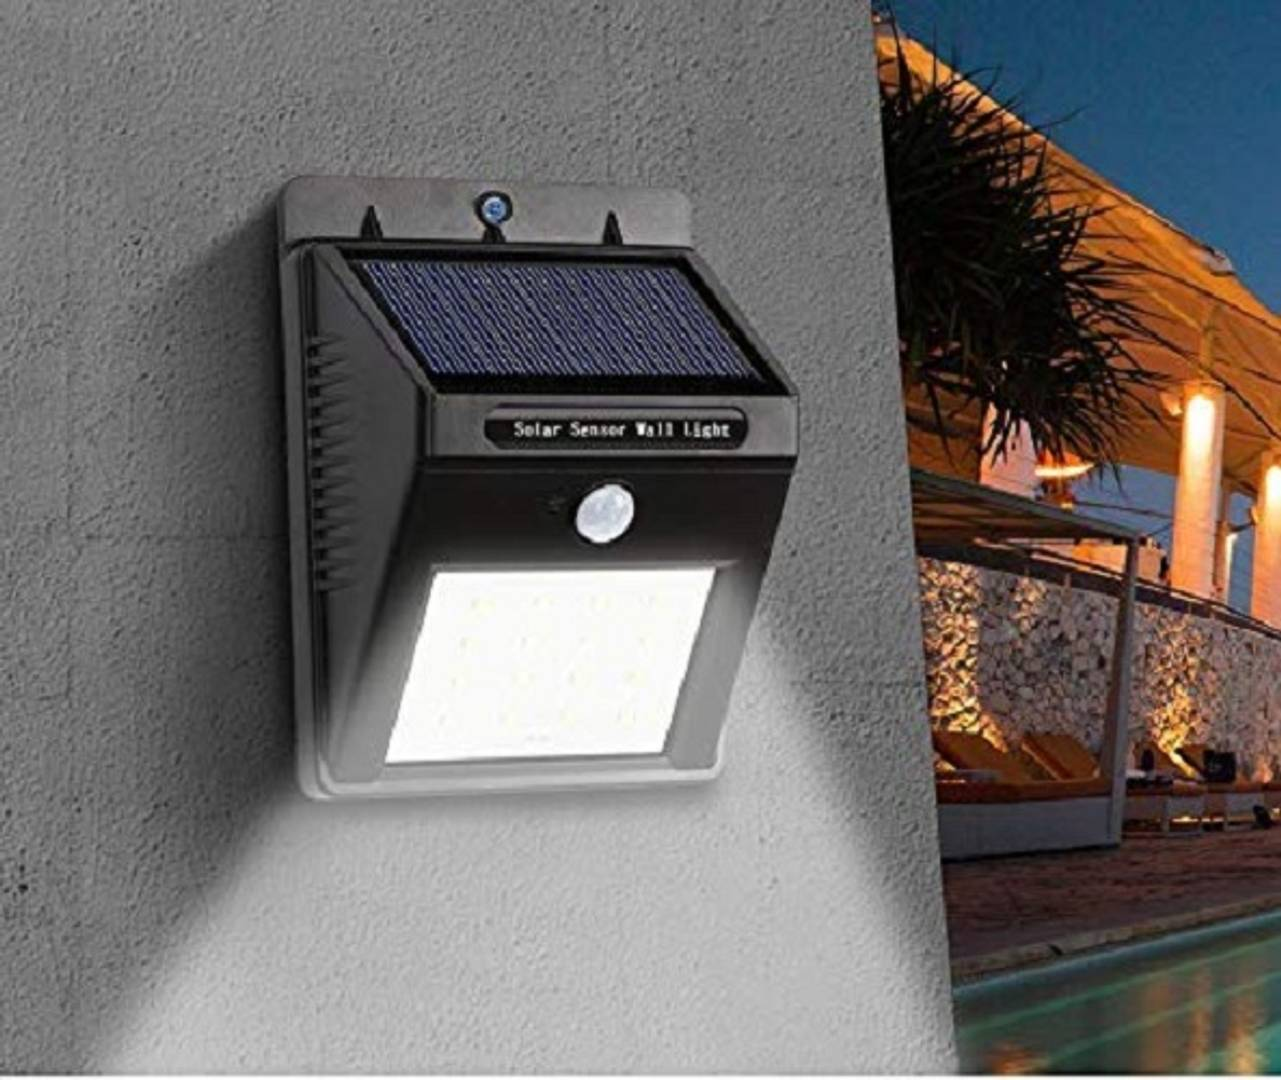 Solar LED Light with Motion Sensor Waterproof Solar Wireless Security Motion Sensor LED Night Light for Home Outdoor/Garden Wall (Black) (20-LED Lights) Solar Light Set  (Wall Mounted Pack of 1)